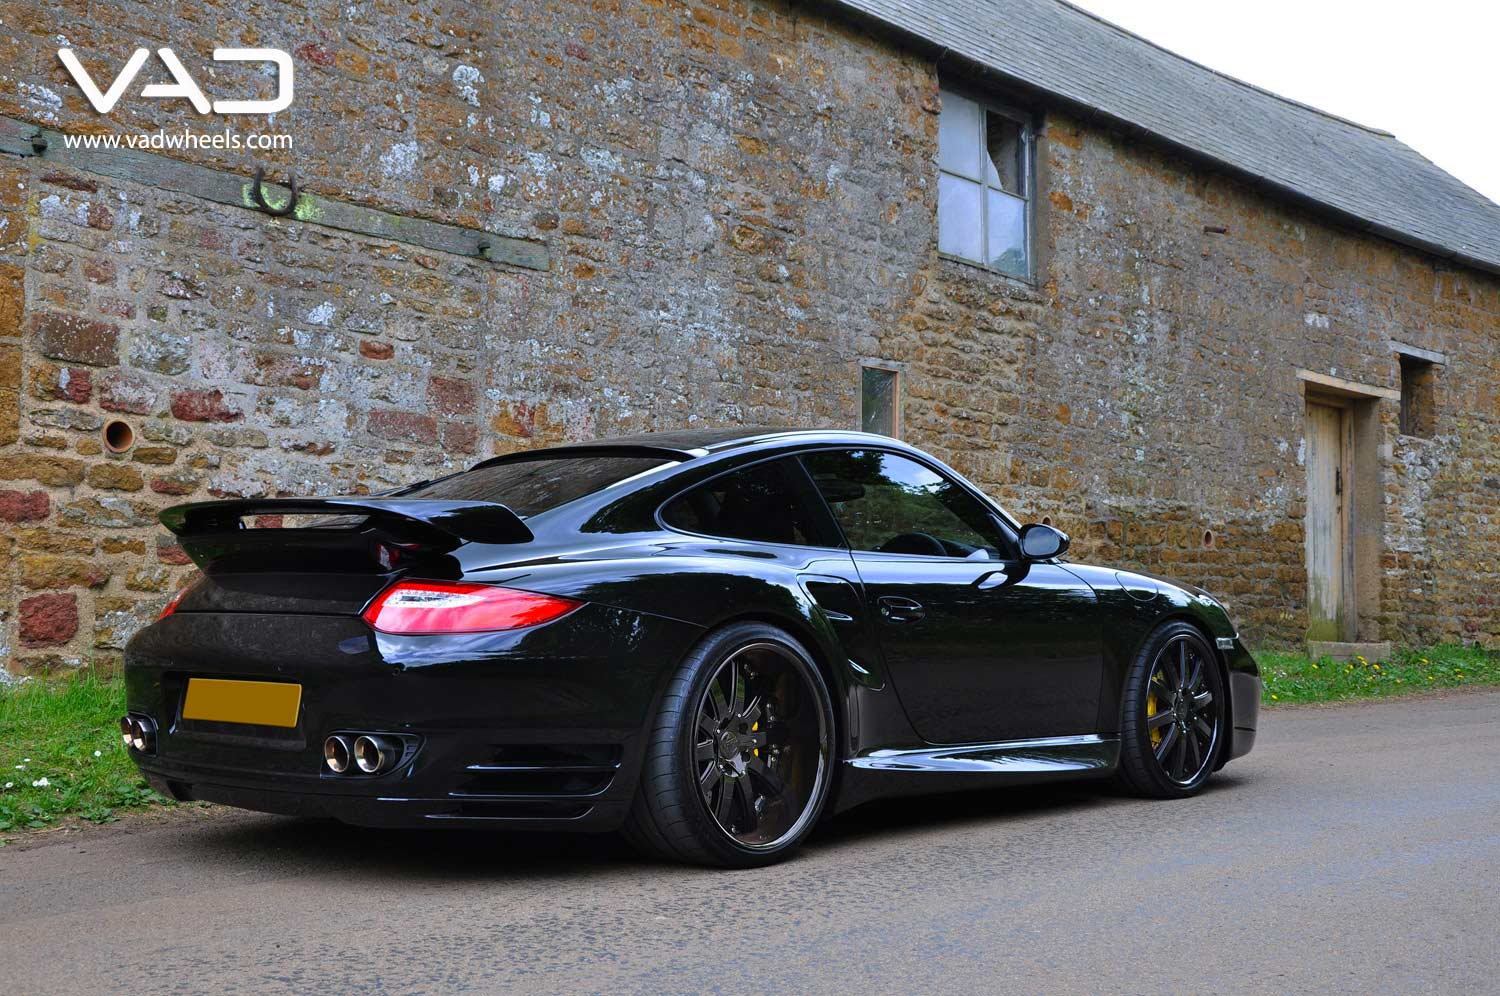 Porsche-997-Turbo-Fitted-With-20''-Altstadt-F100--Black-Edition-Rear-Profile